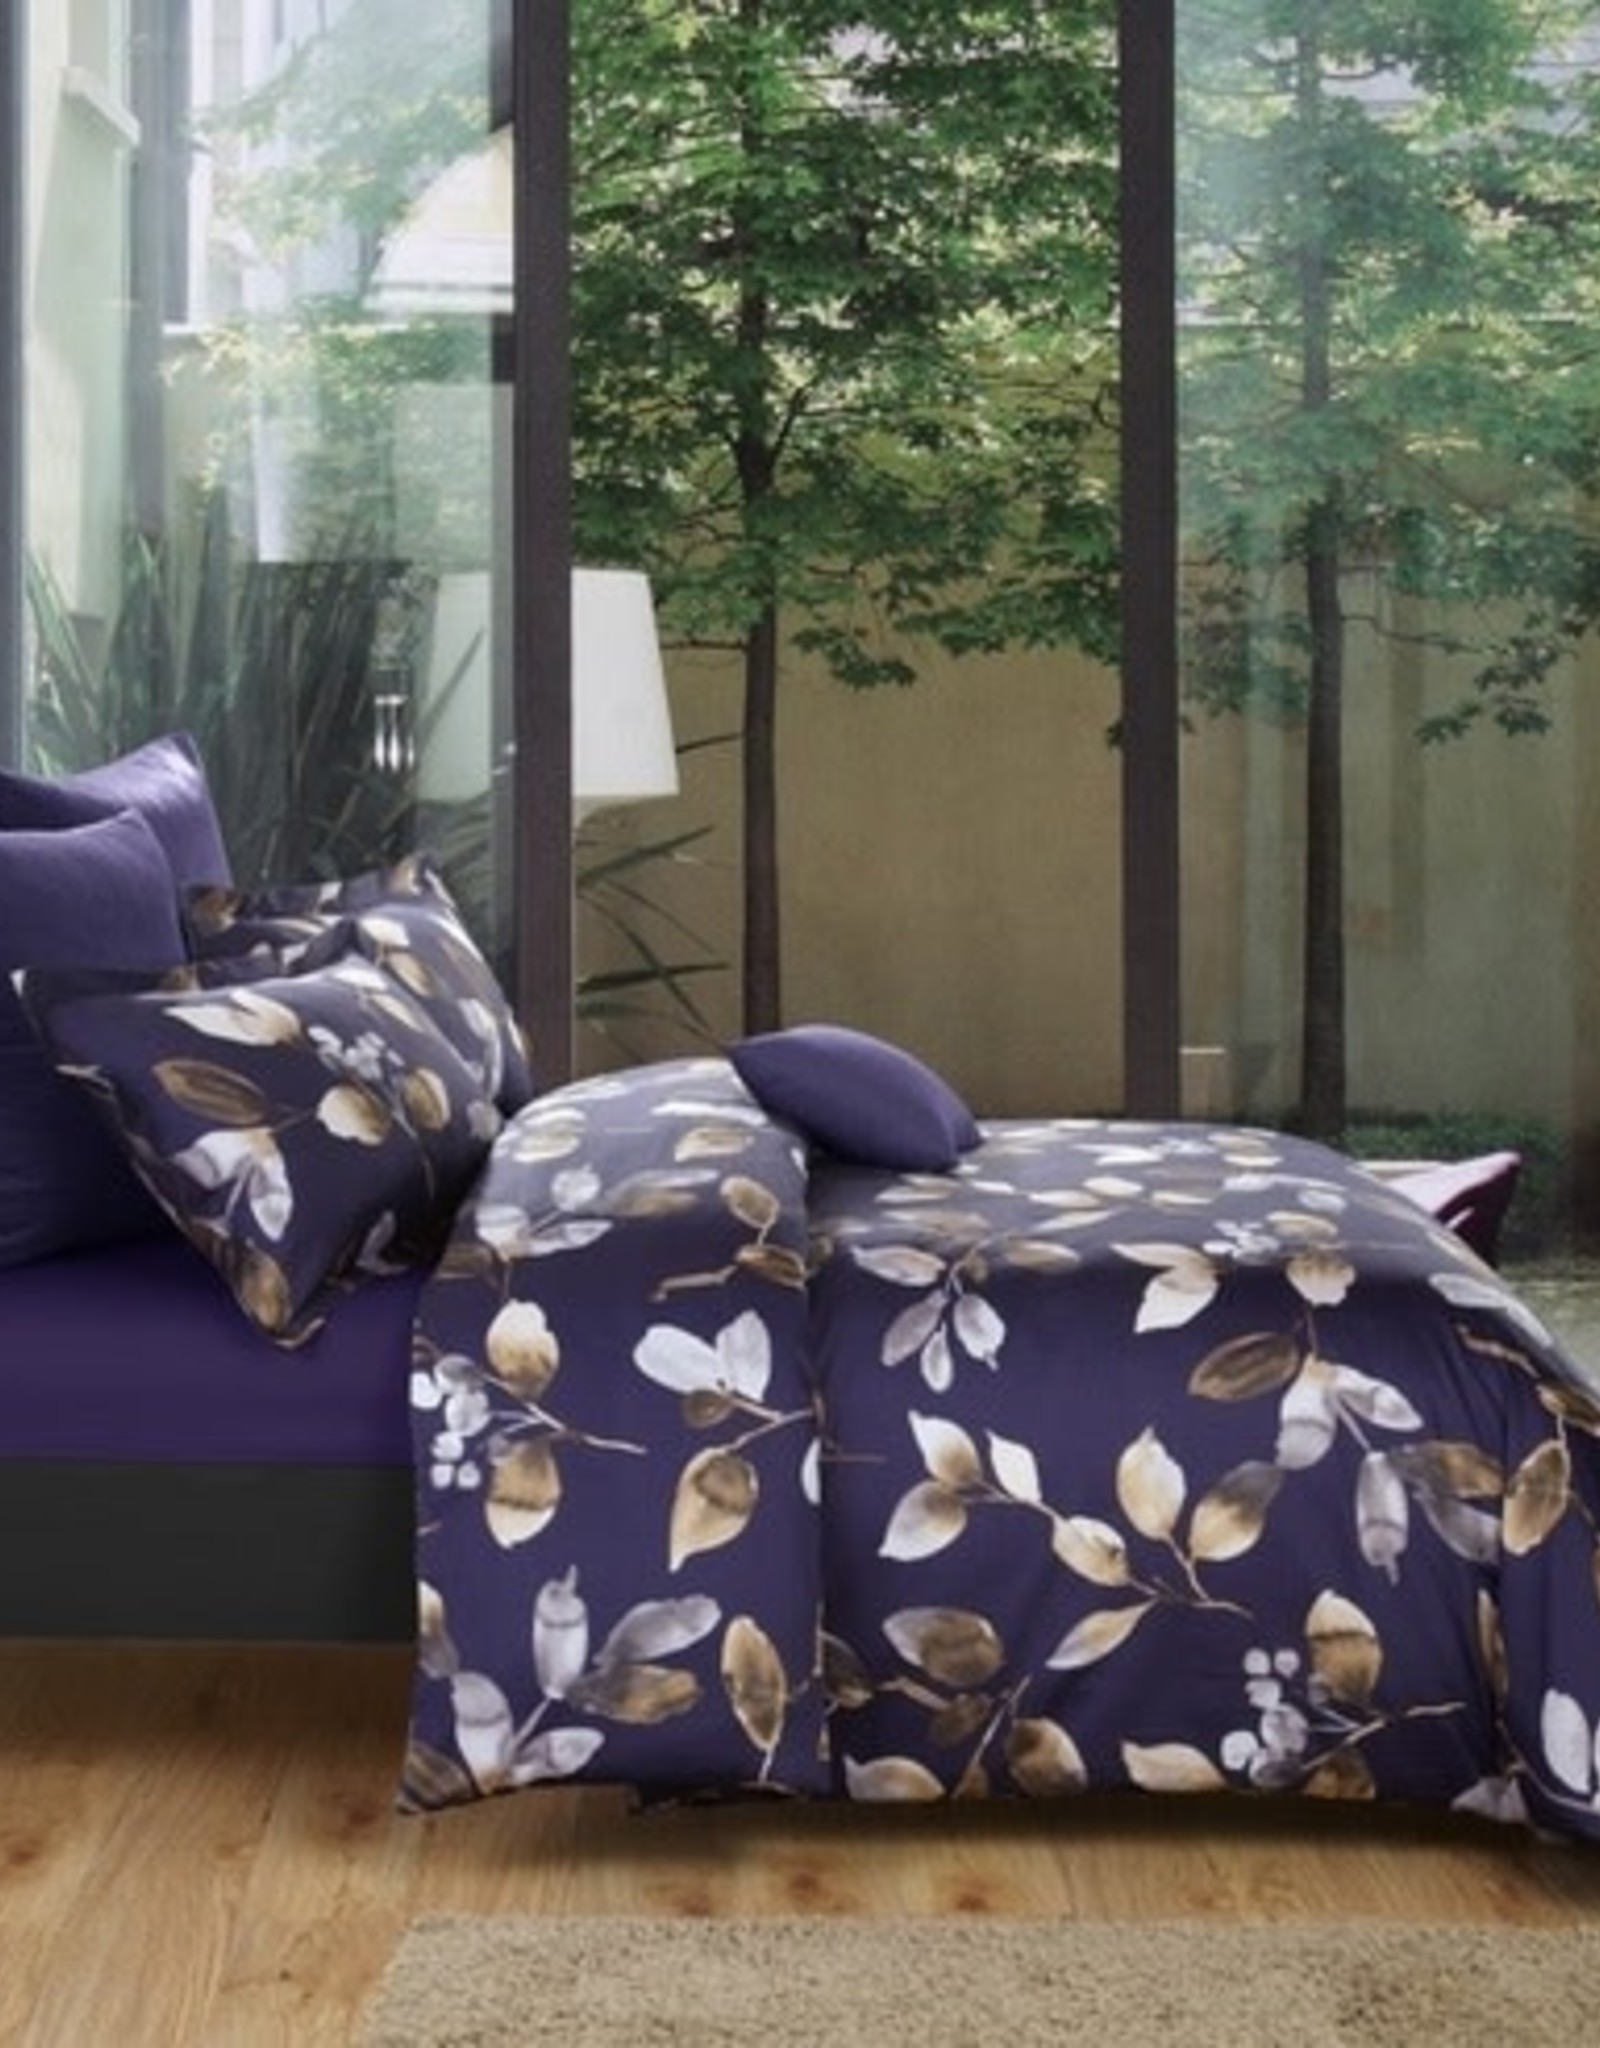 Daniadown Duvet Set Daniadown Banff Purple Queen w / shams*